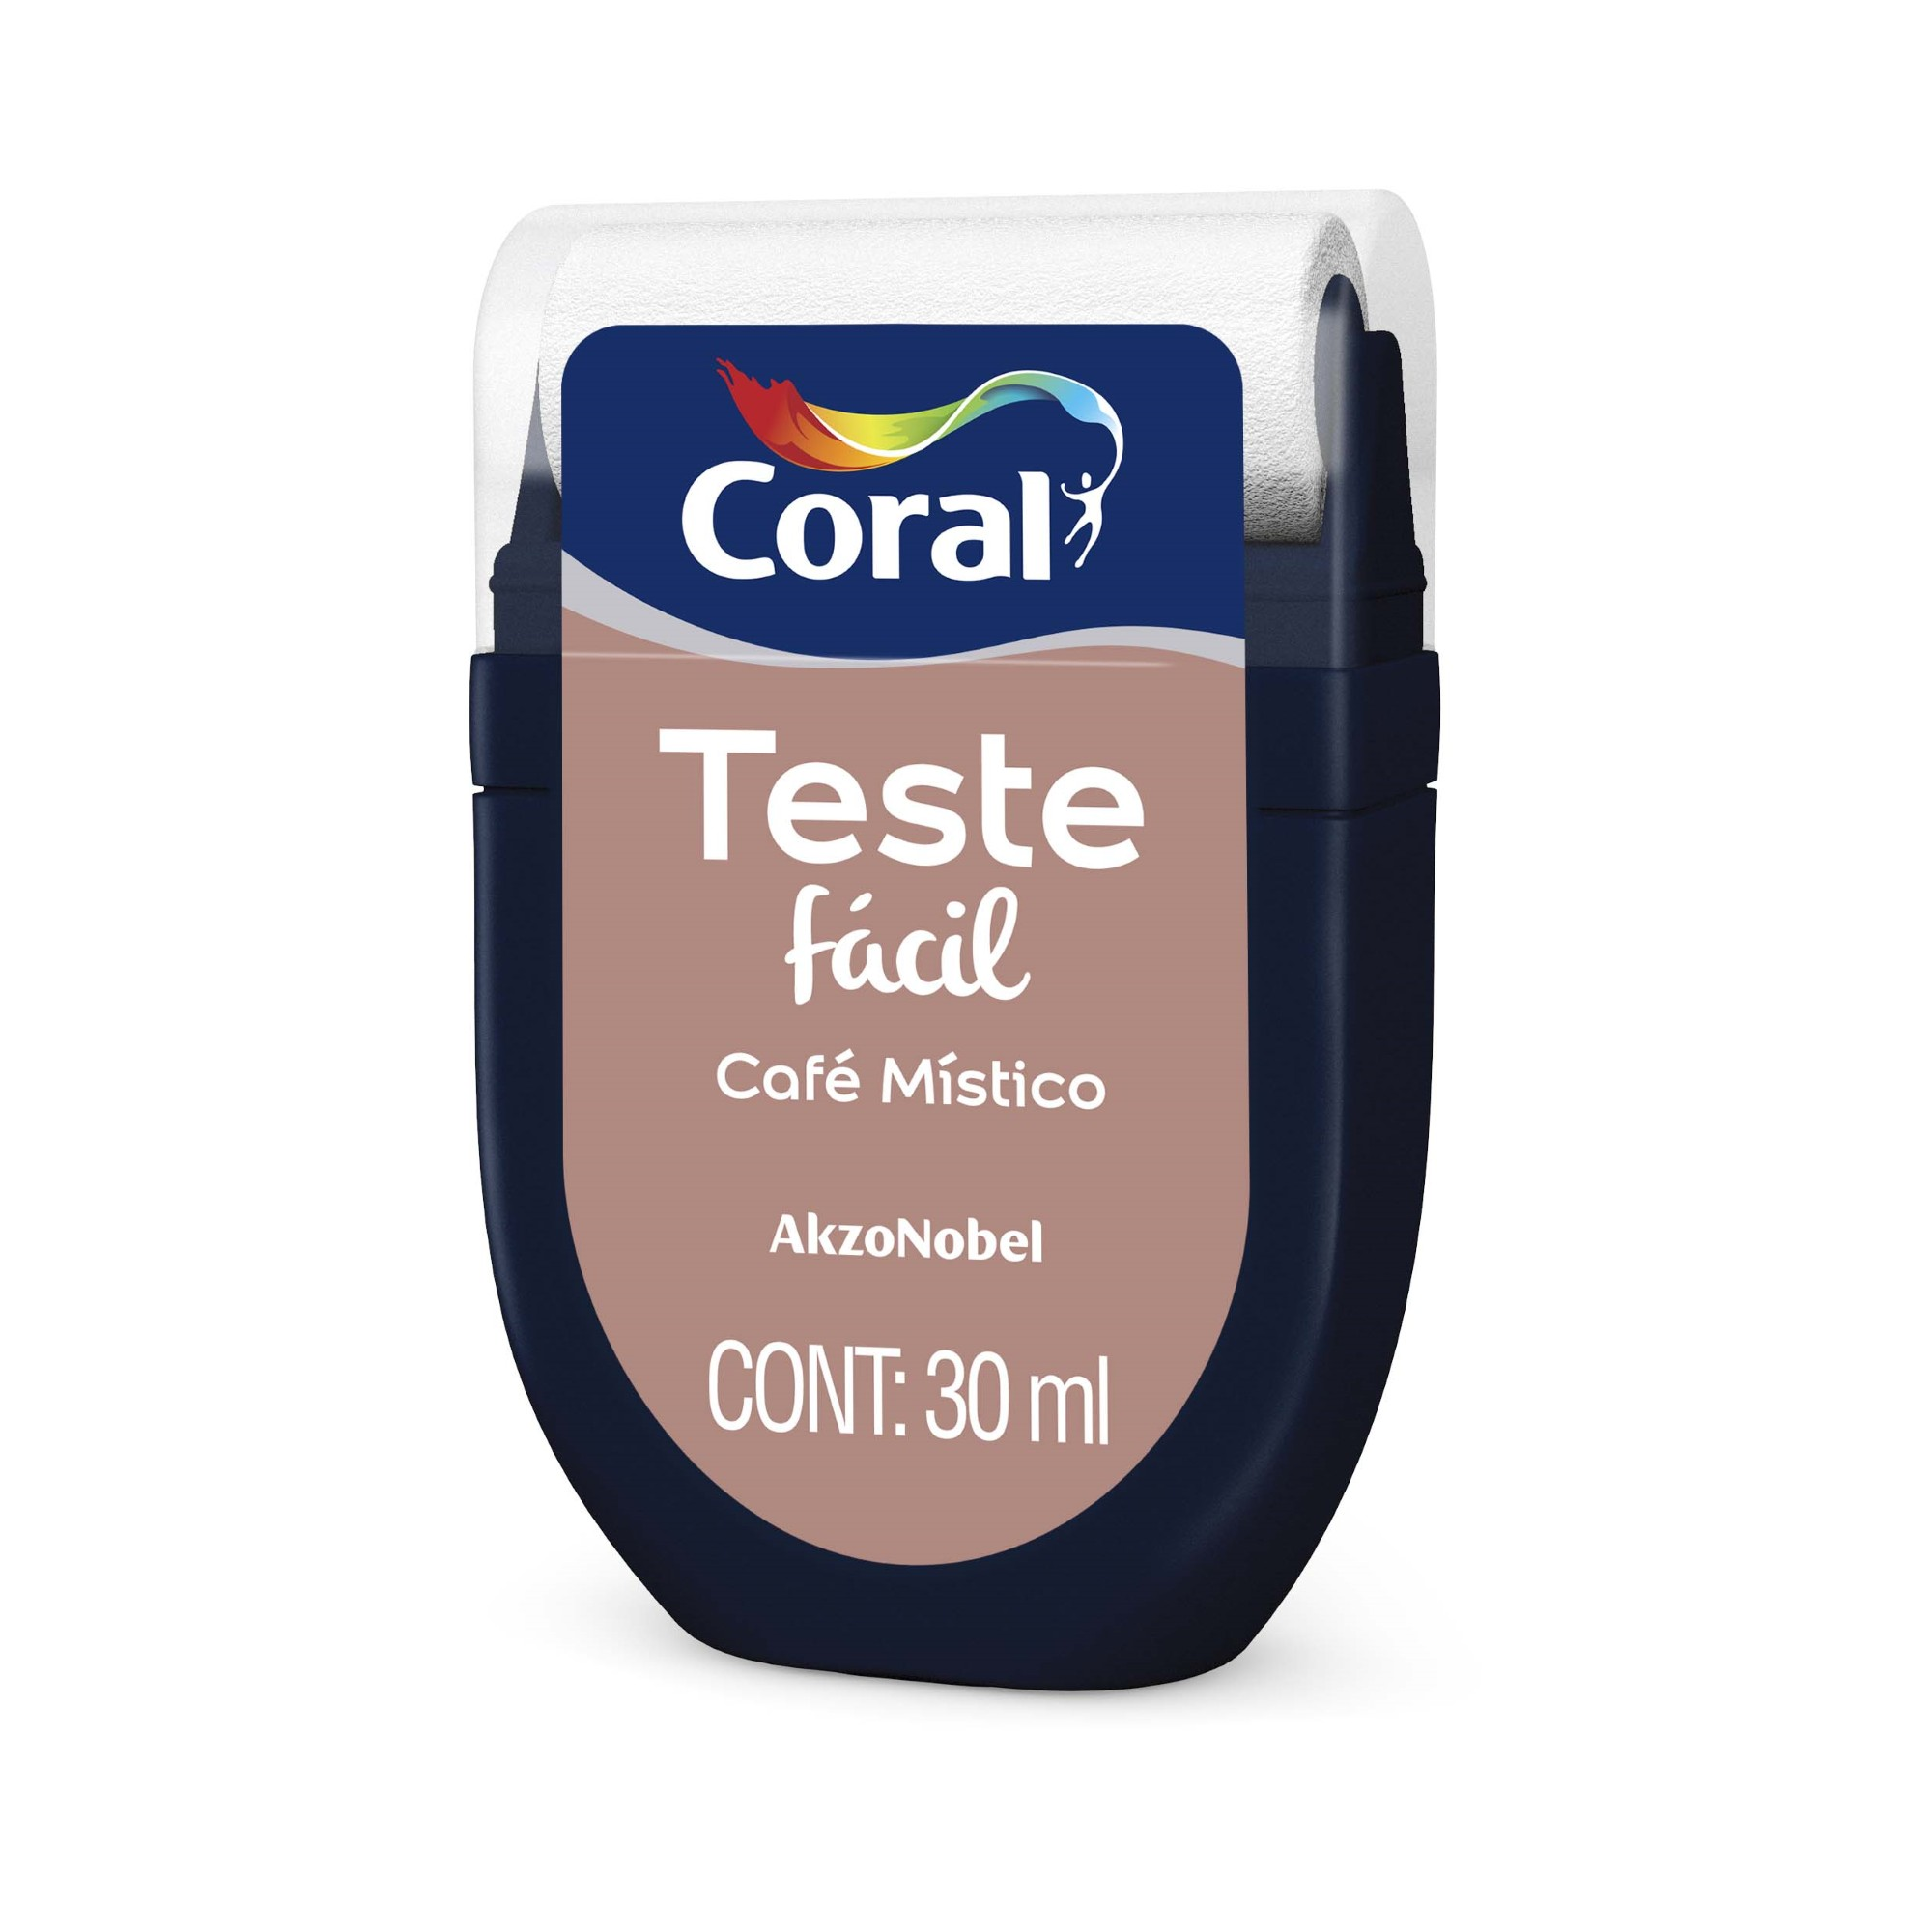 Teste Facil 30ml Cafe Mistico - Coral